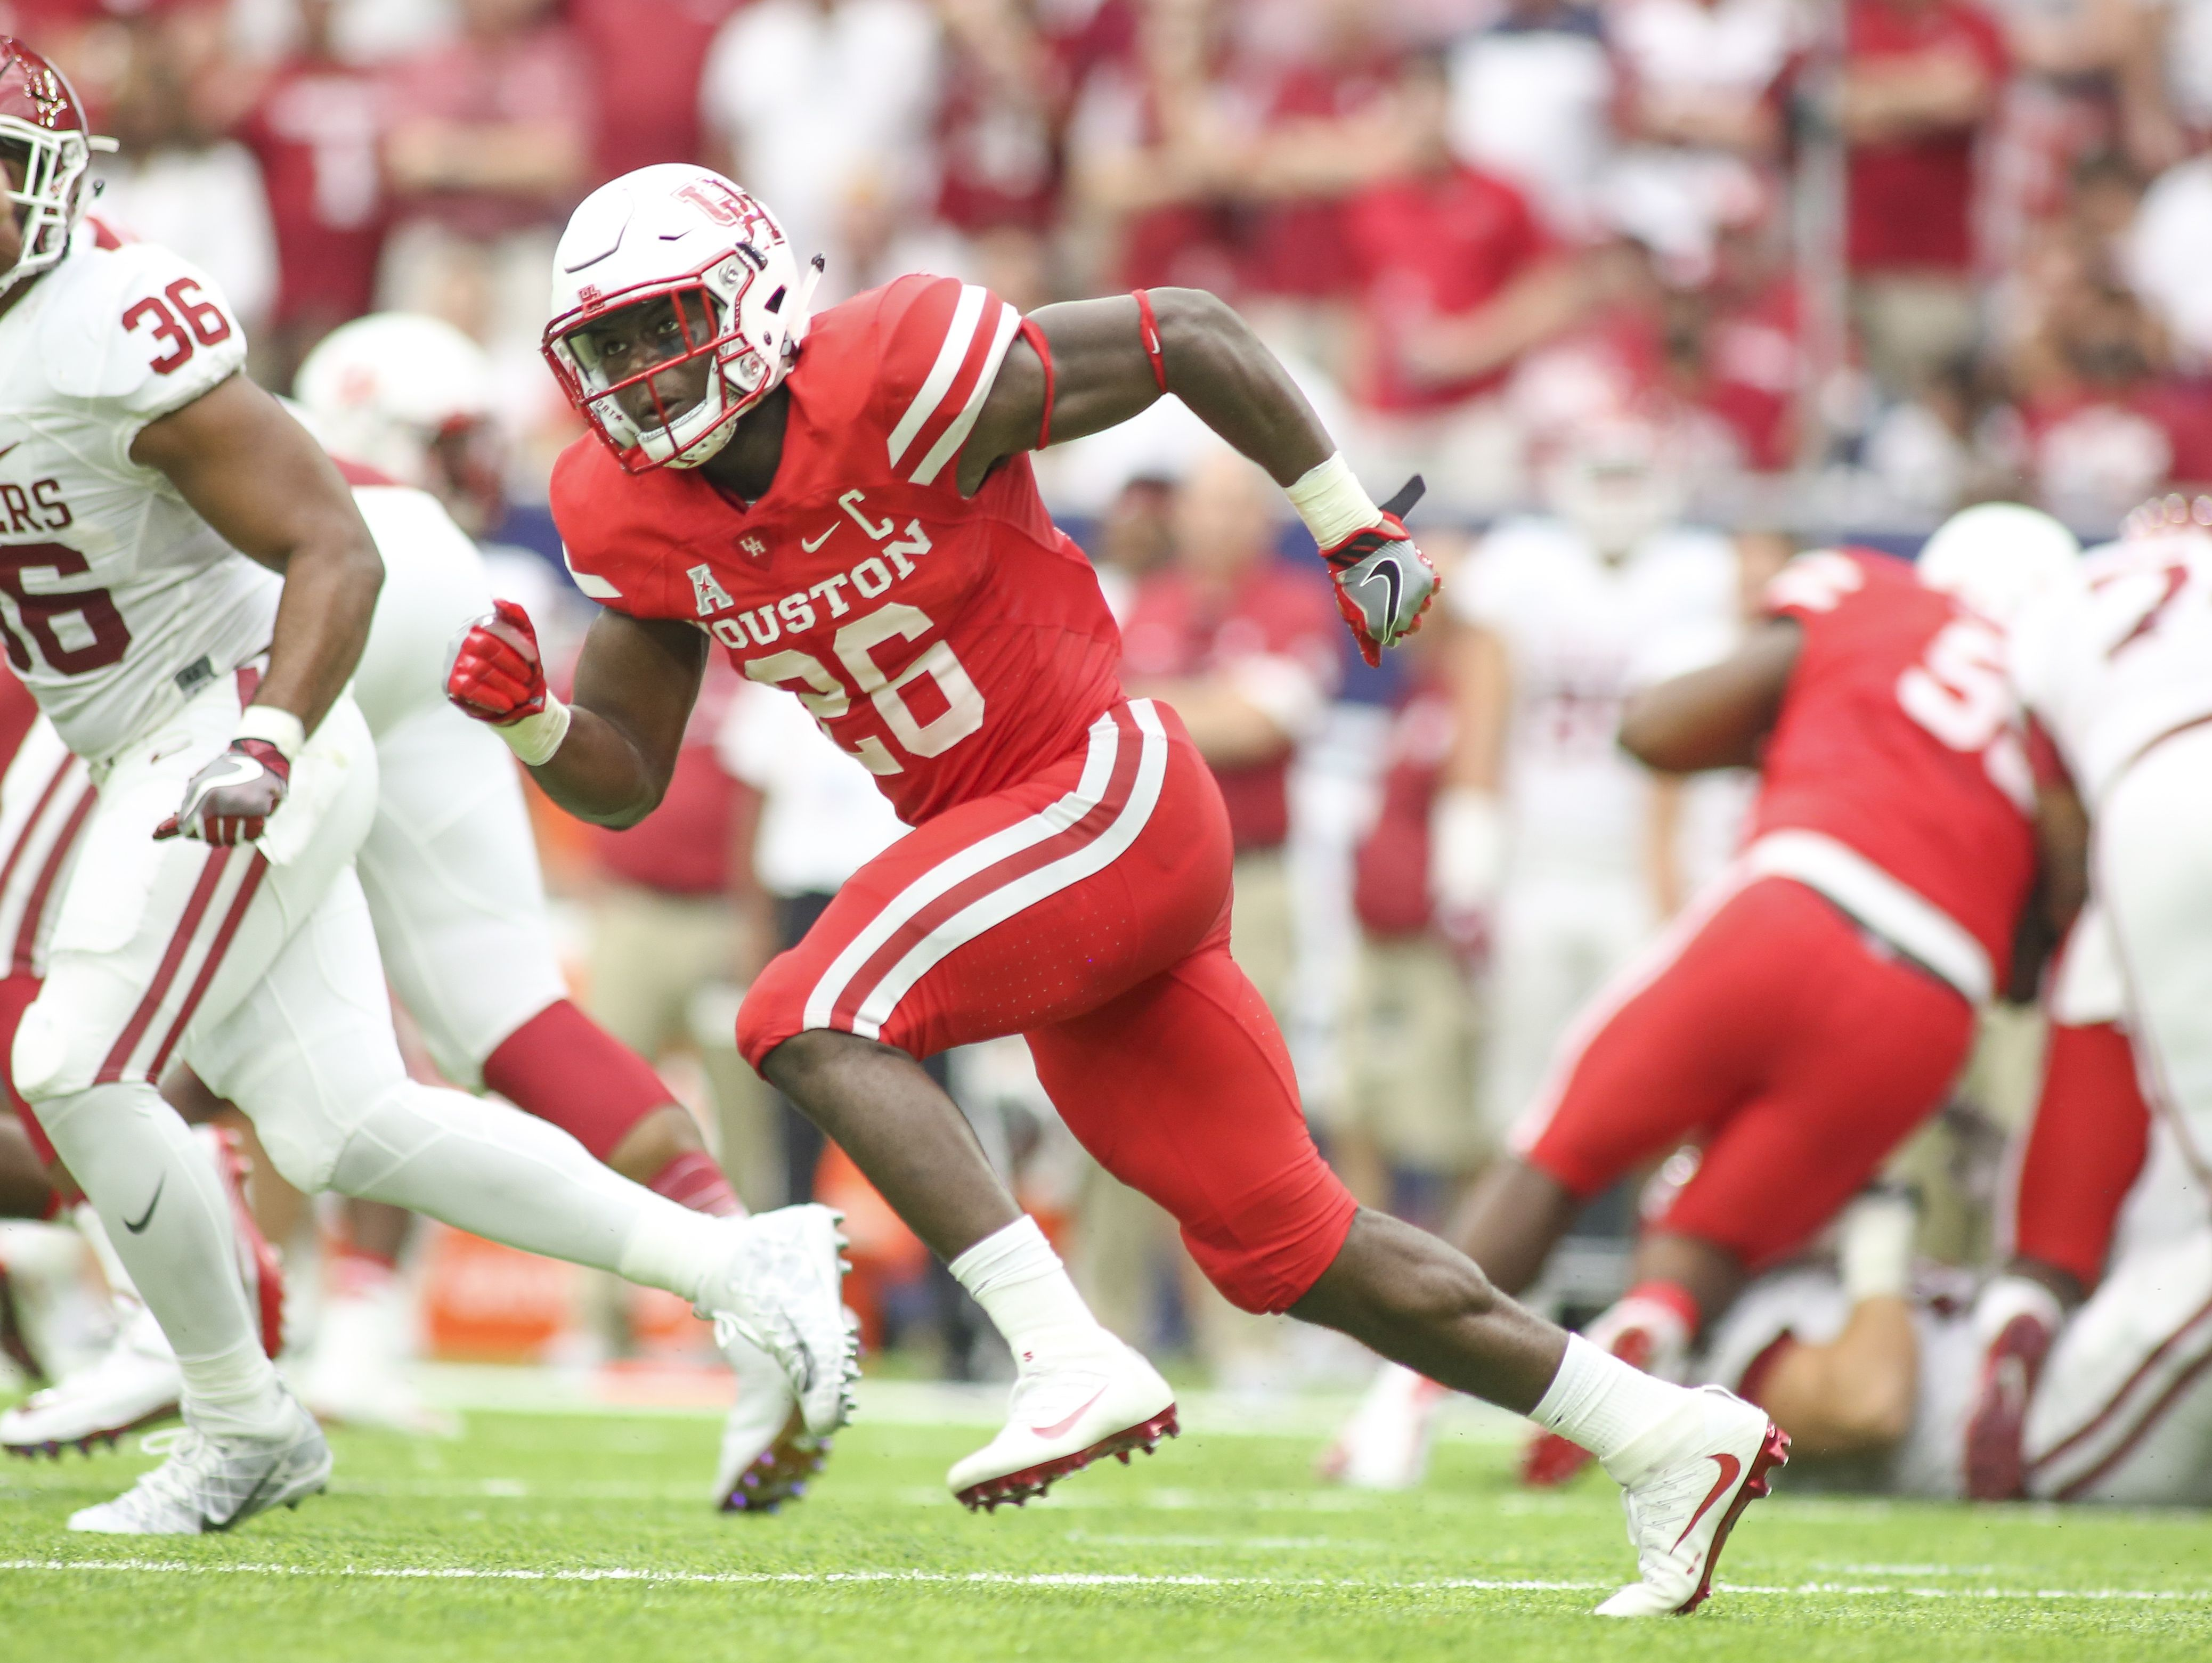 Former Calvary running back Brandon Wilson looks to make a play on the ball as a defensive back for Houston in its win over Oklahoma earlier this season.